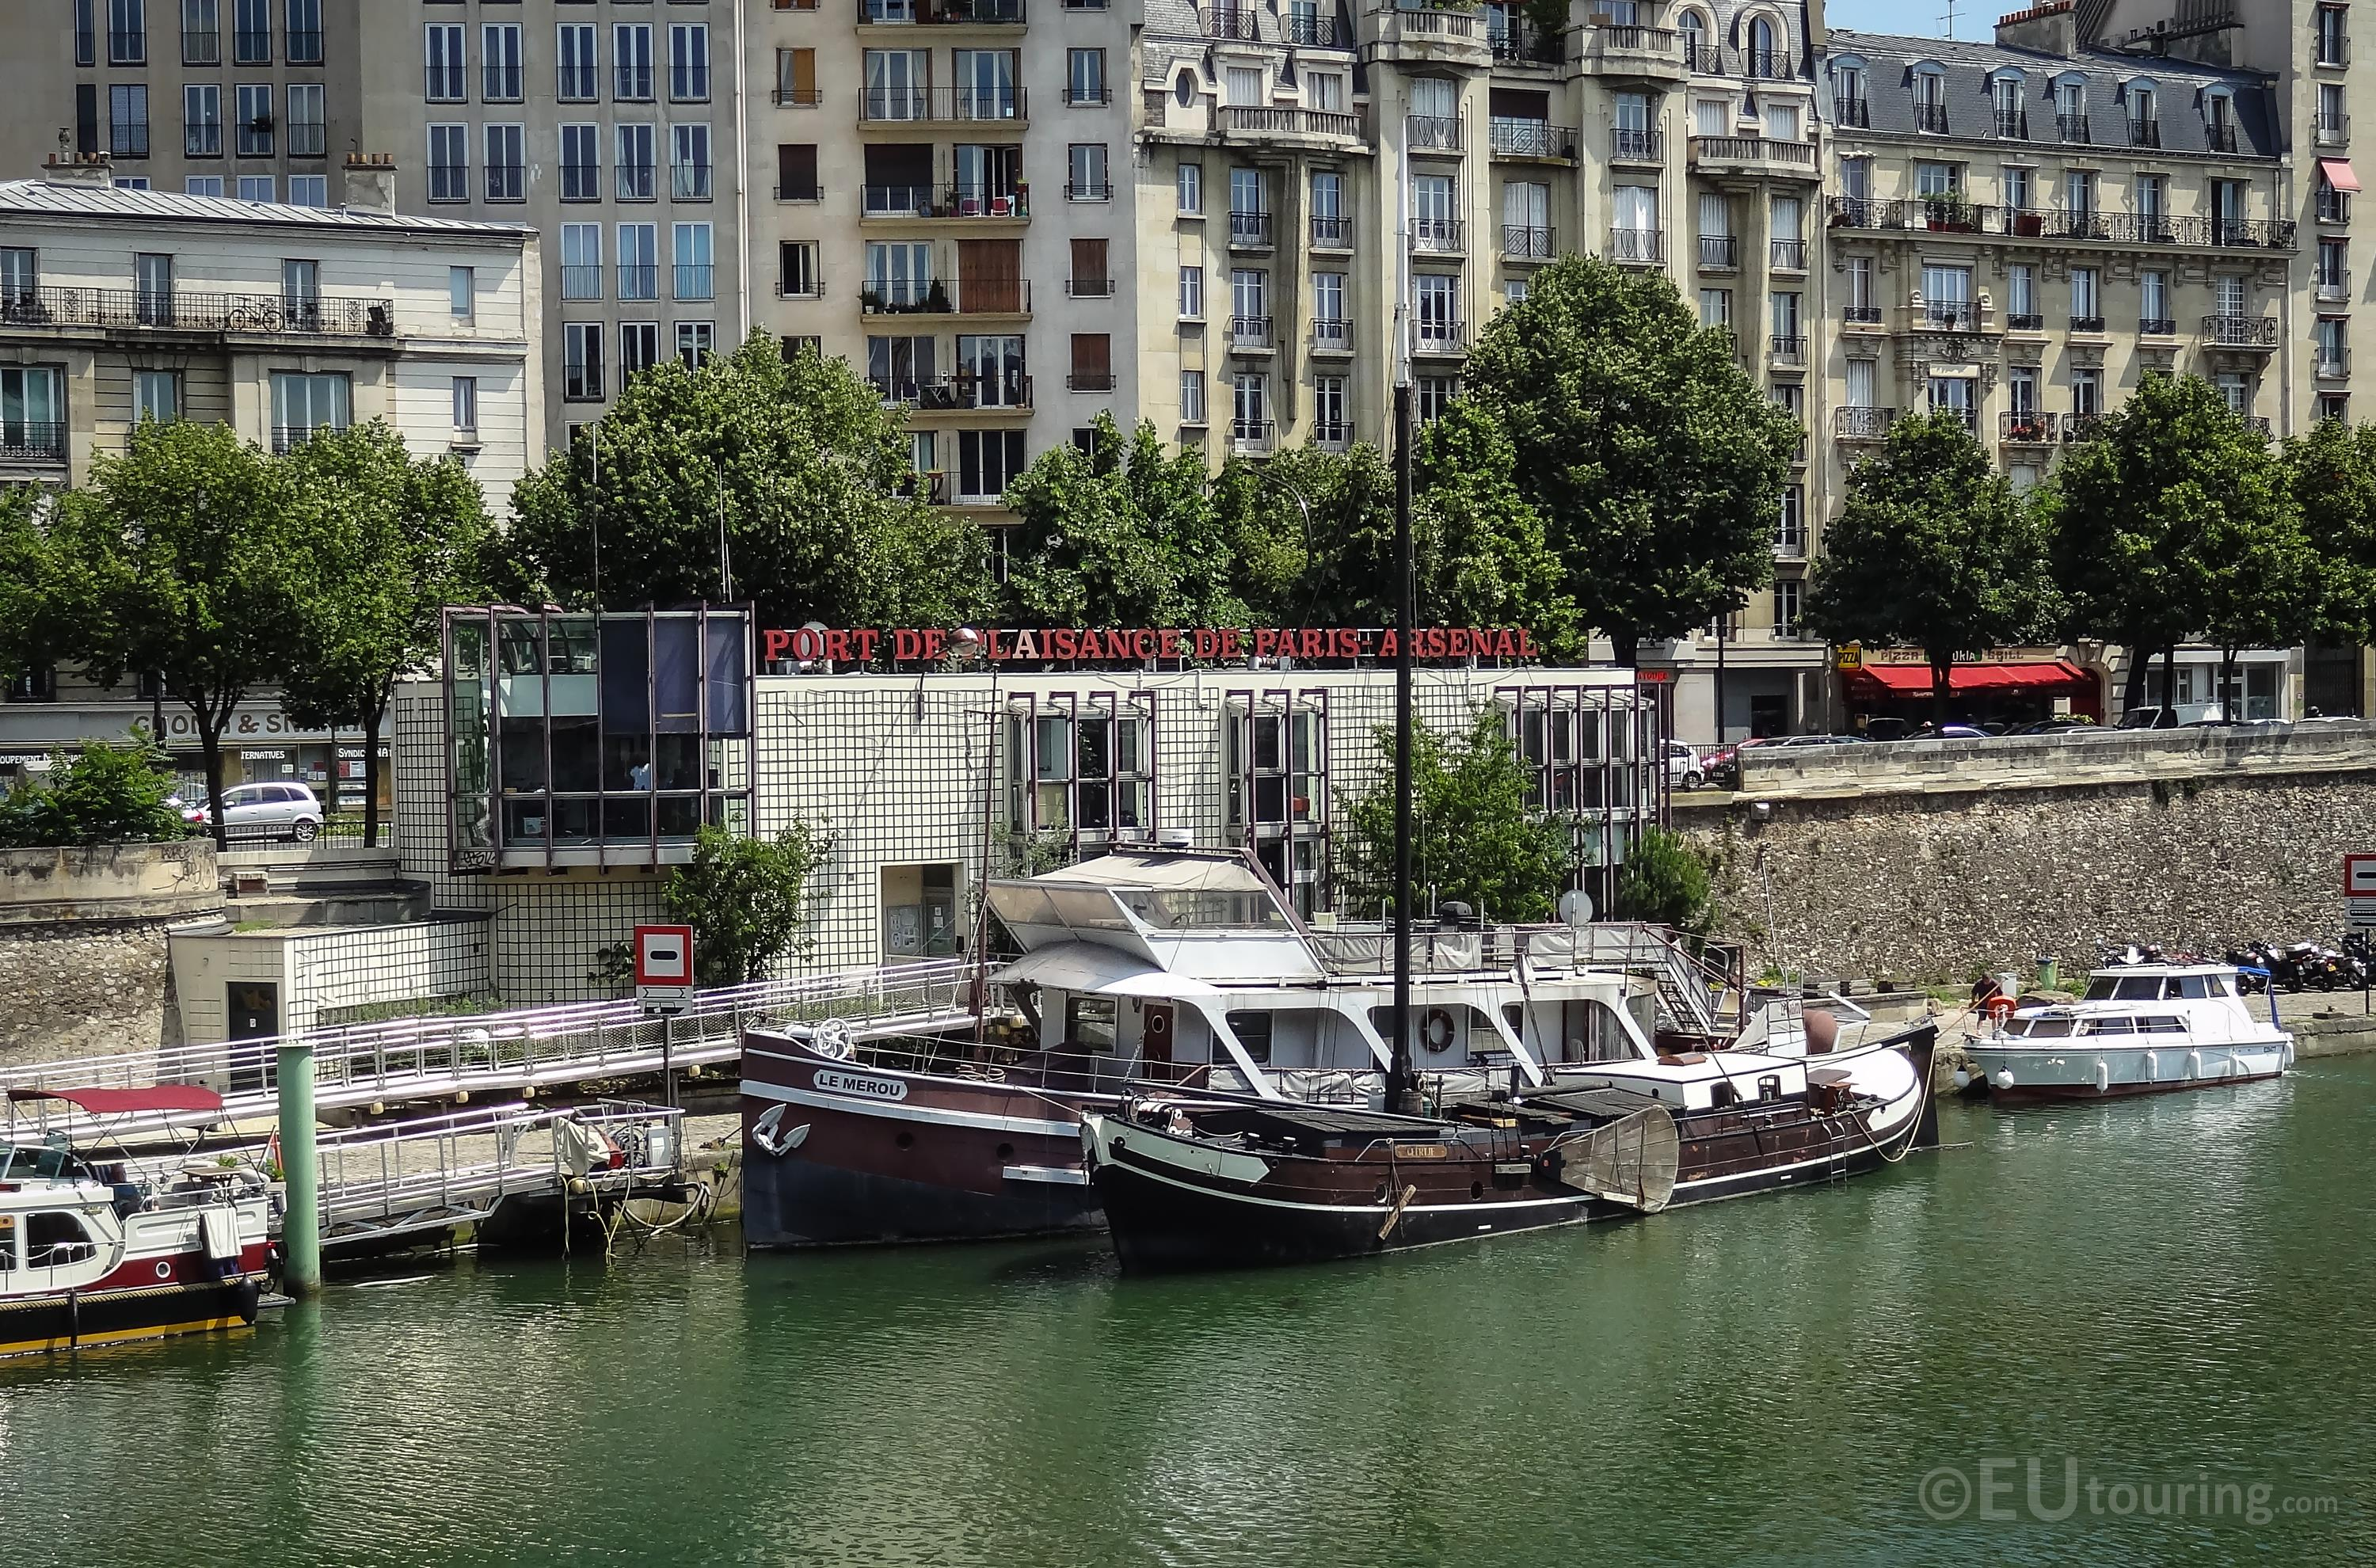 Harbour offices at Port de l'Arsenal